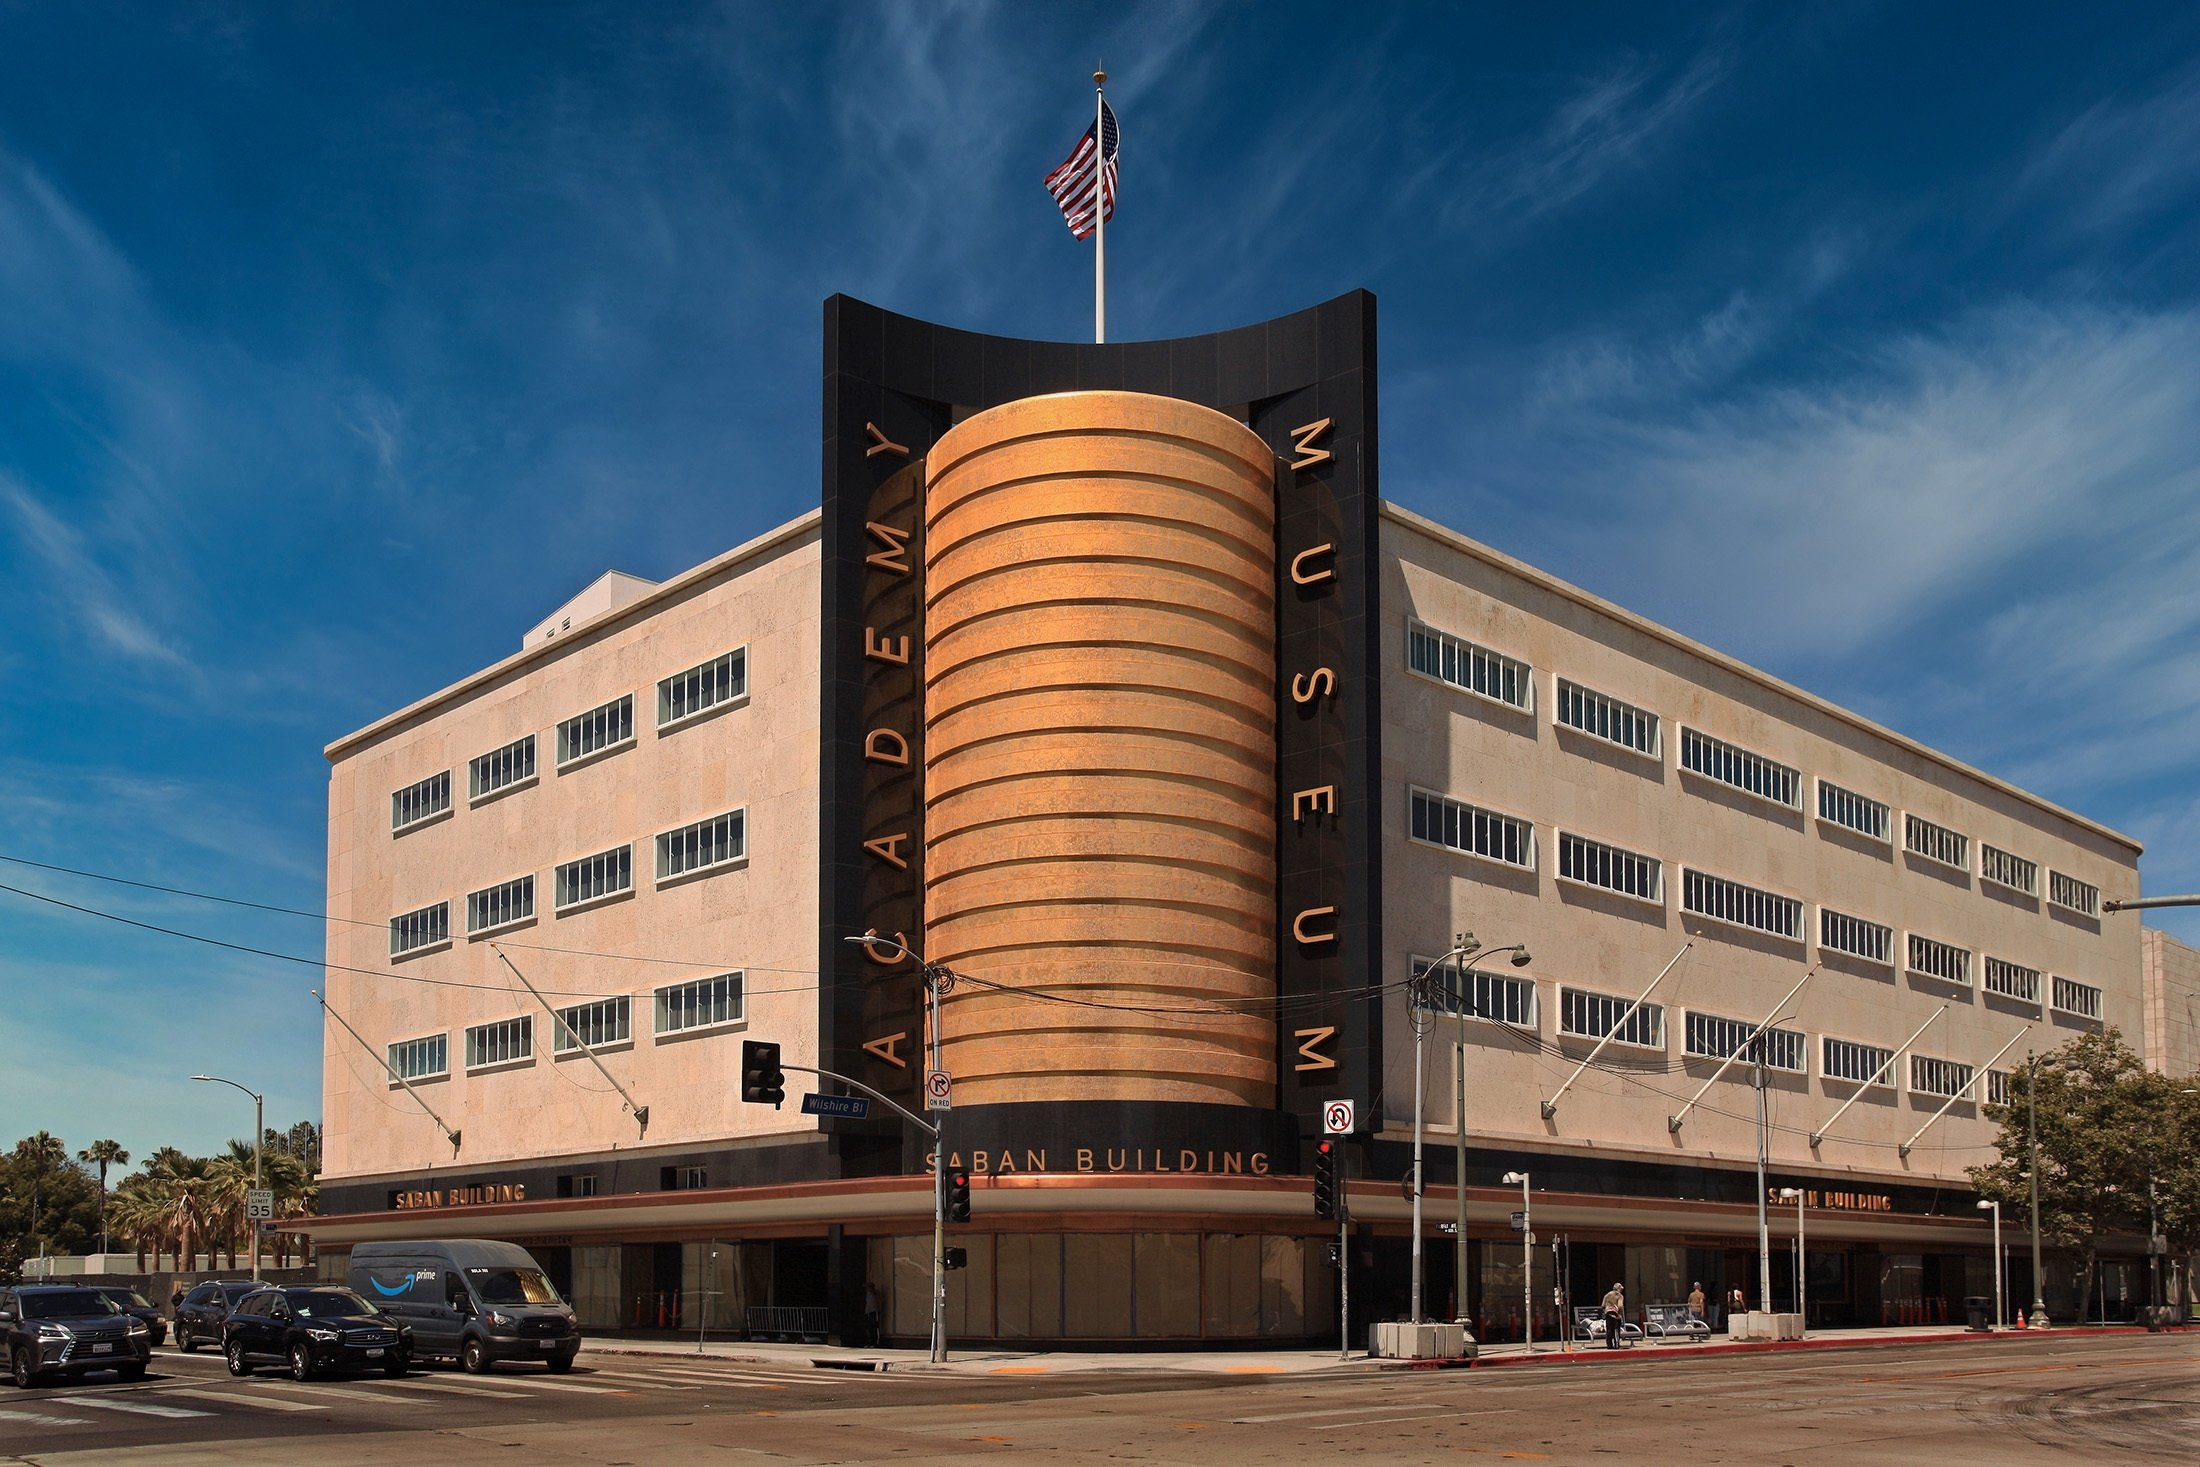 An exterior view from the Saban Building of the Academy Museum of Motion Pictures, Los Angeles, California, July 3, 2021. (Shutterstock Photo)